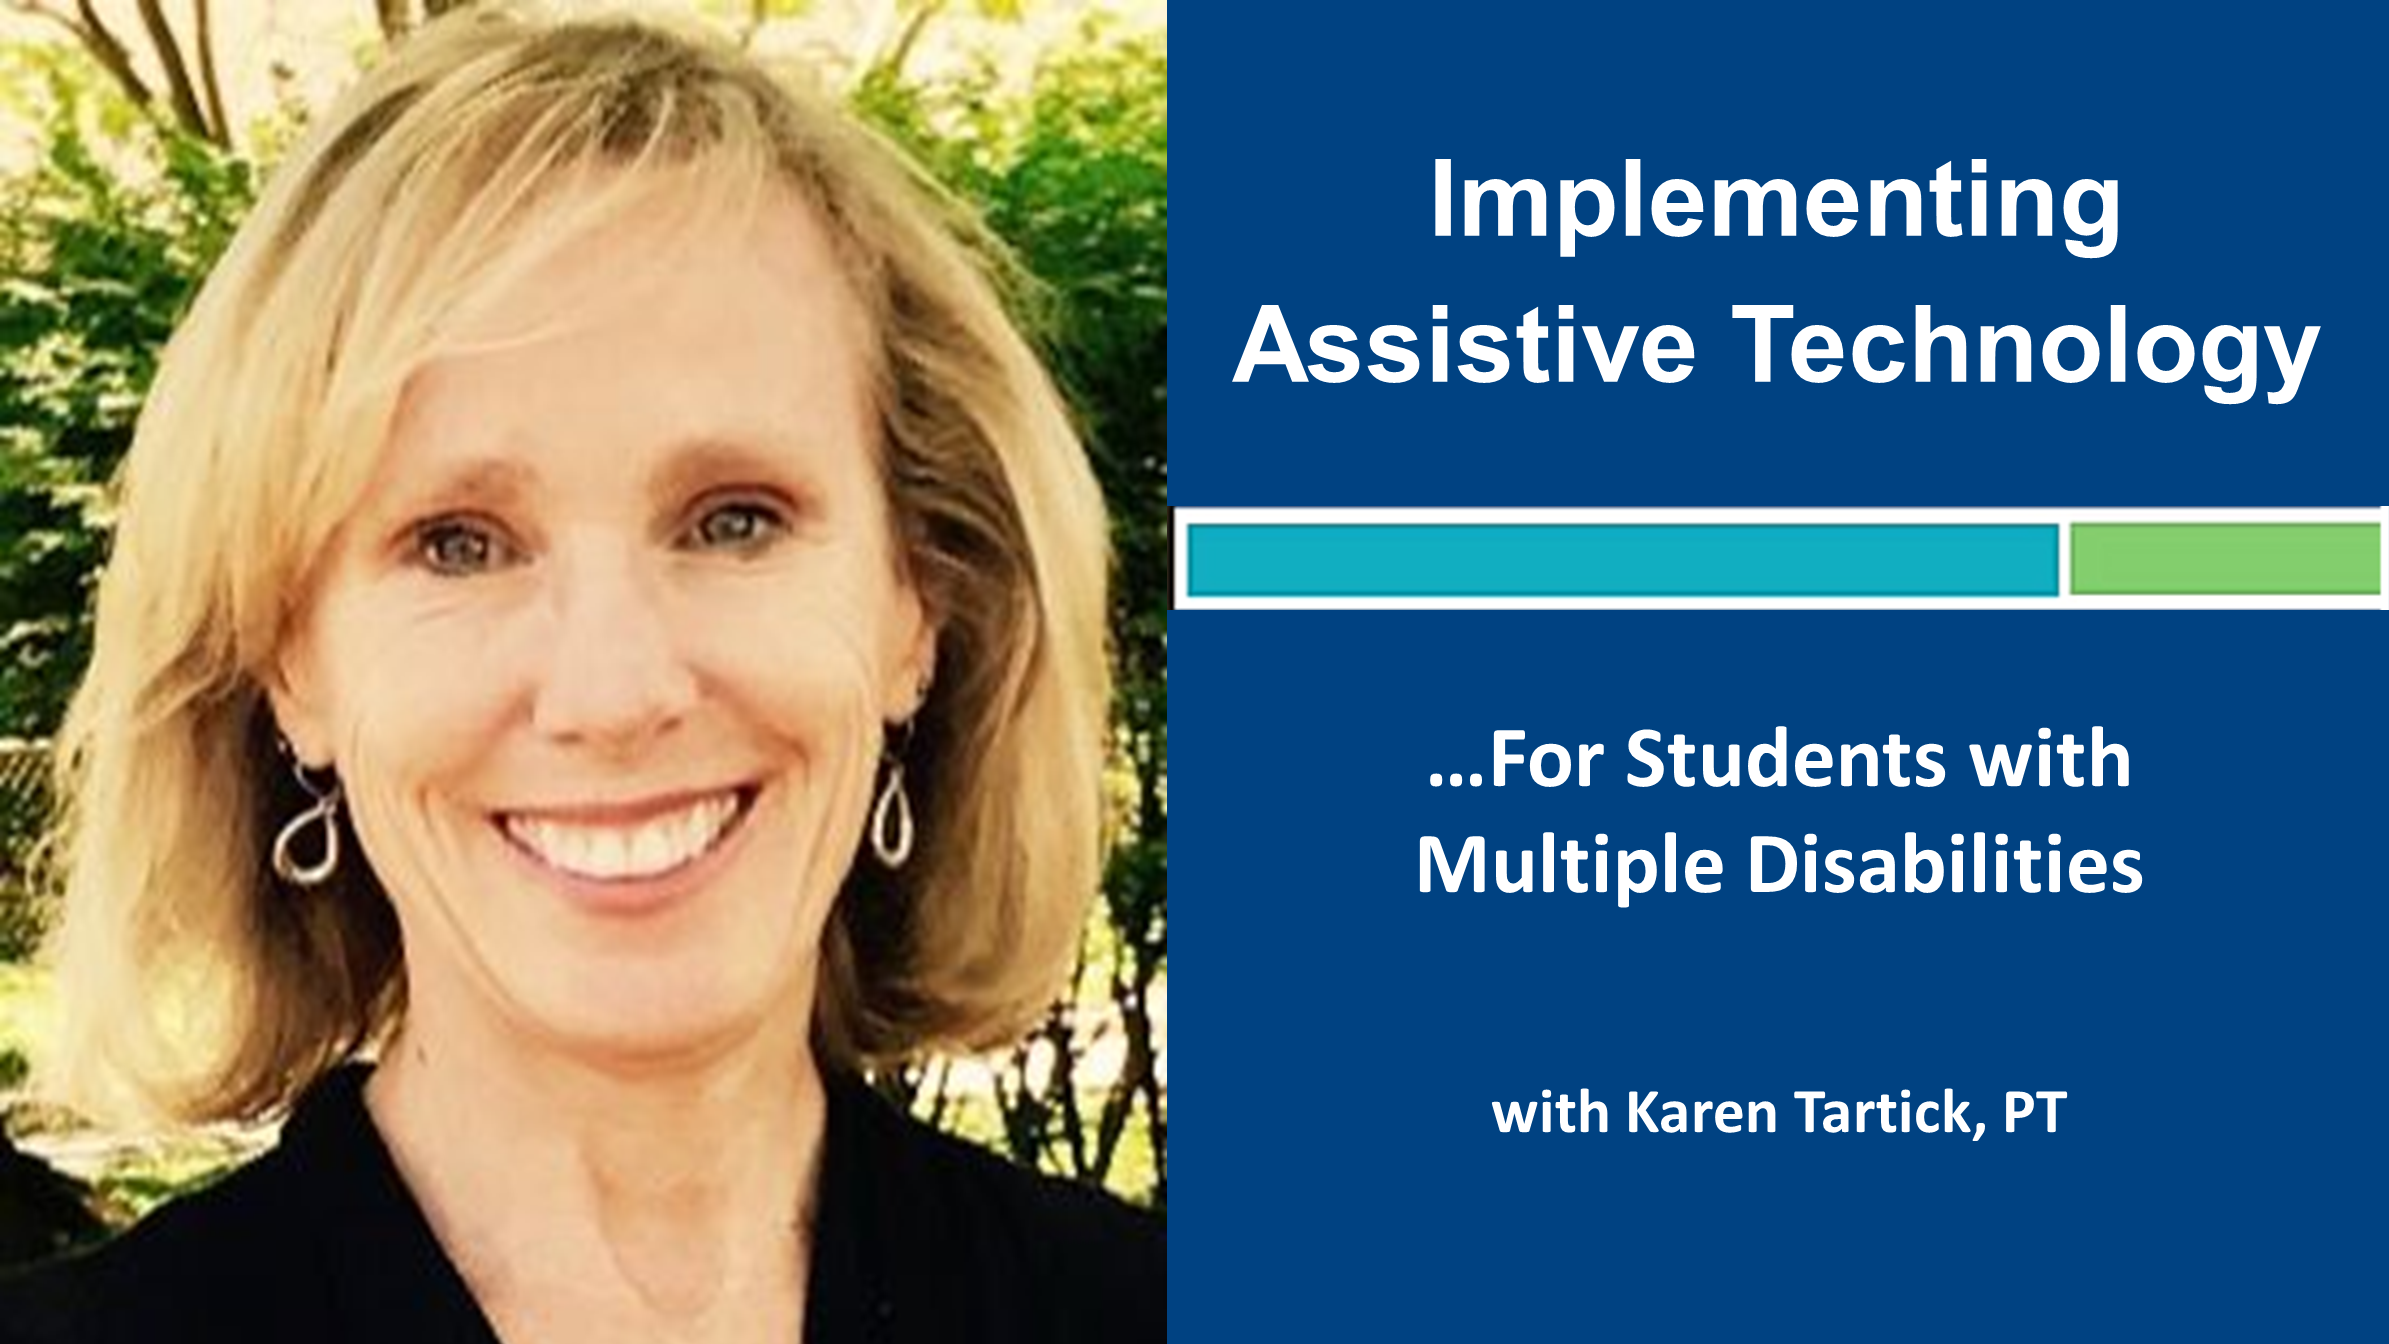 Webinar 5: Implementing Assistive Technology for Students with Multiple Disabilities with Karen Tartick, PT